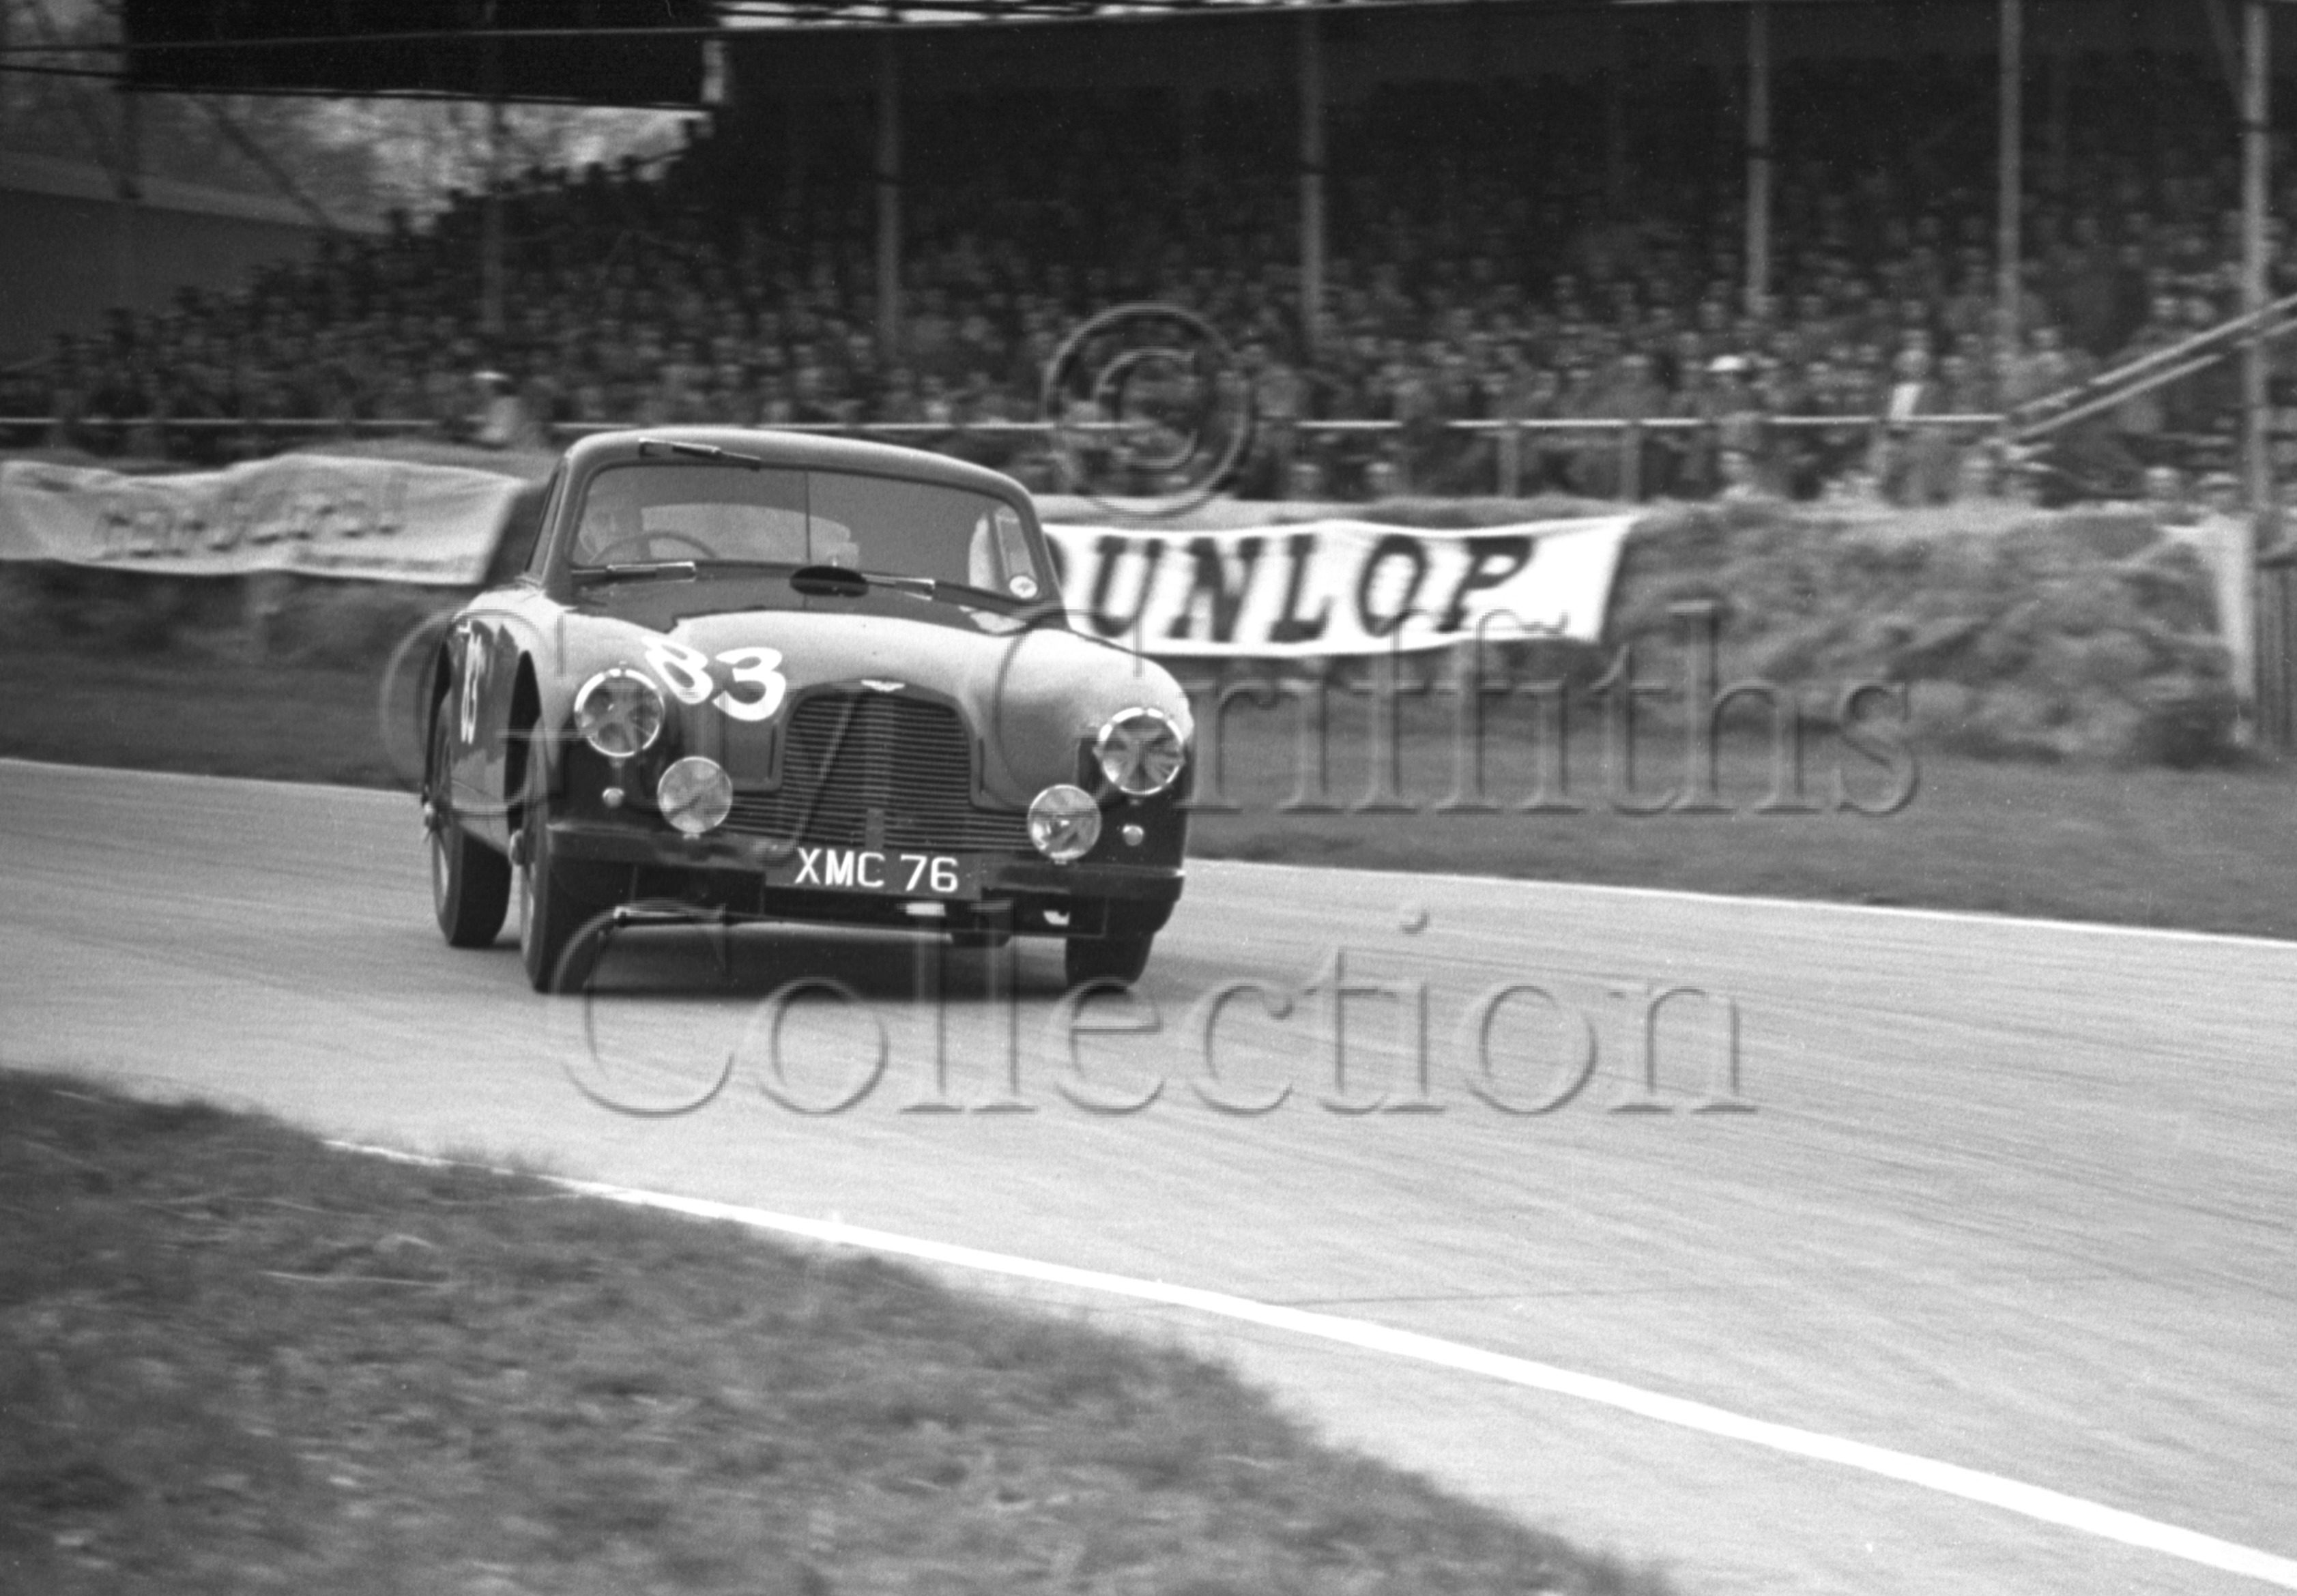 52-896–E-Thompson–Aston-Martin–Goodwood–14-04-1952.jpg - The Guy Griffiths Collection